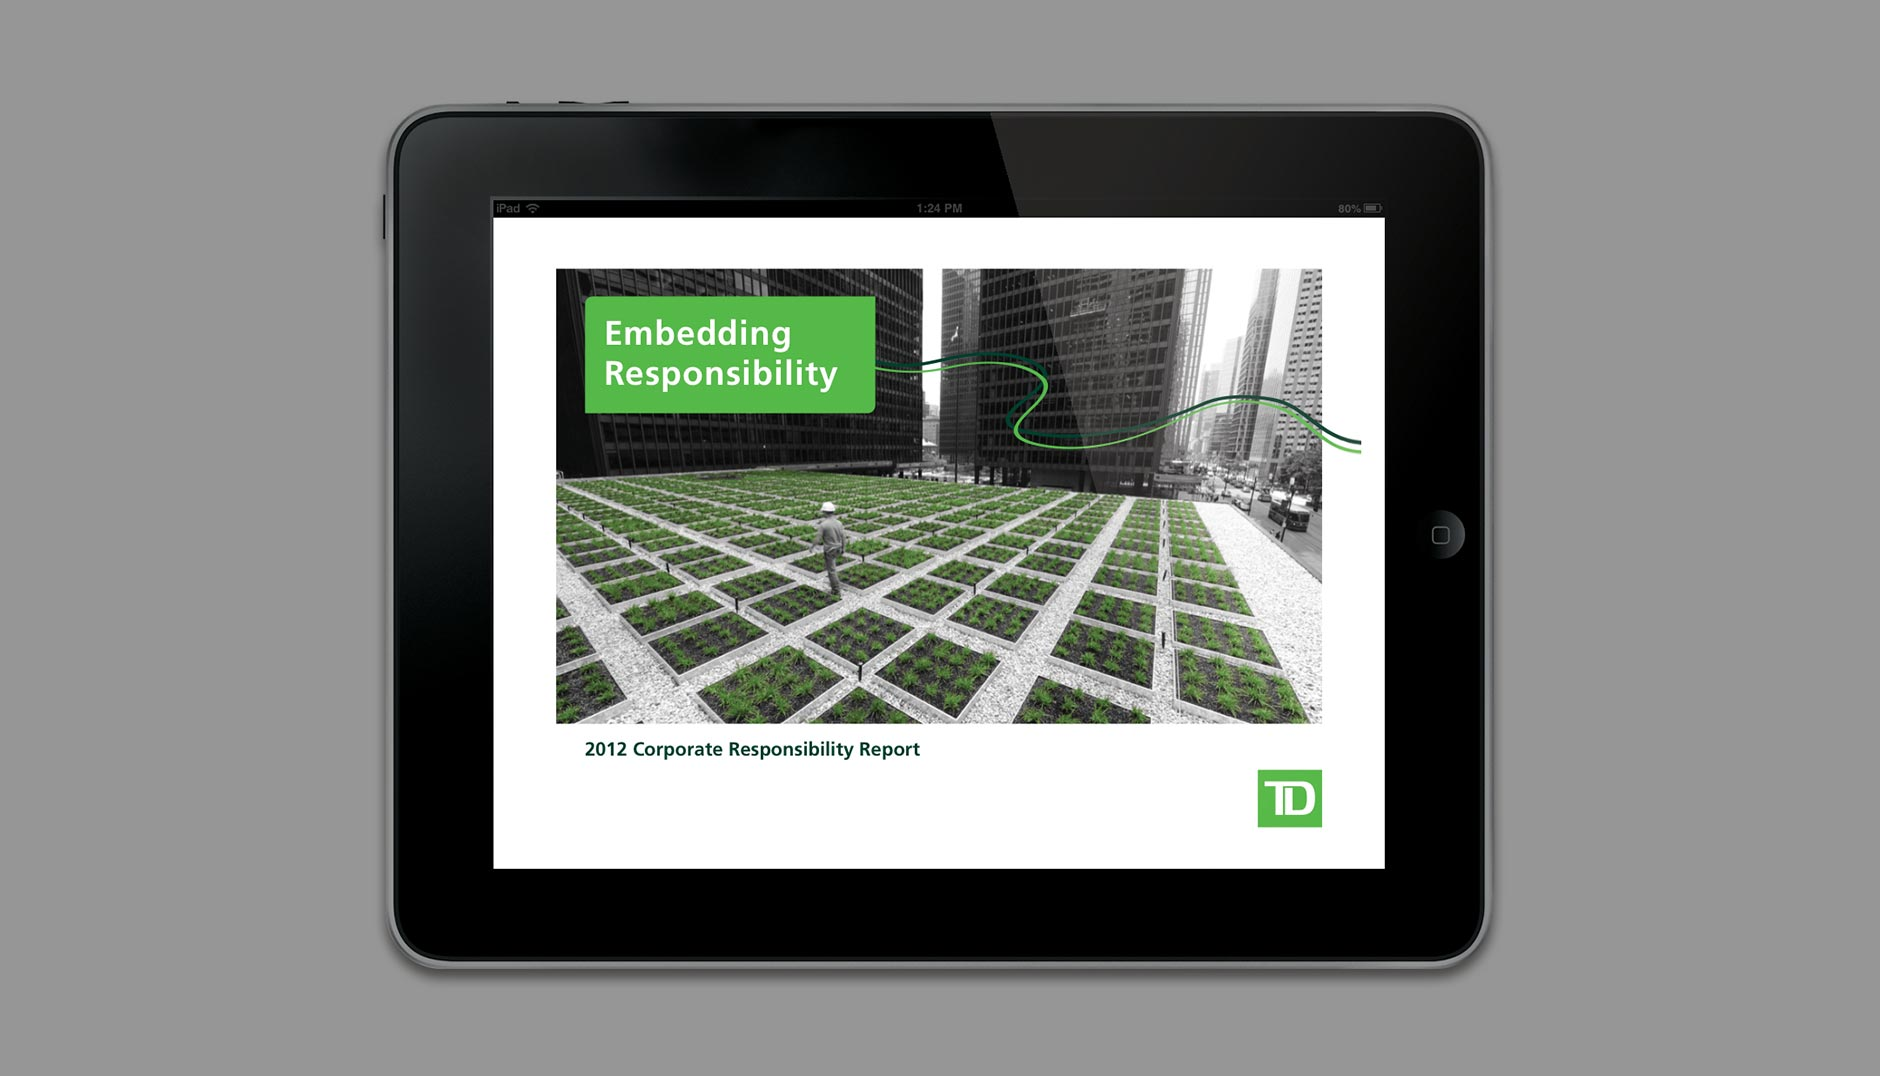 TD Corporate Responsibility Report online slide 1